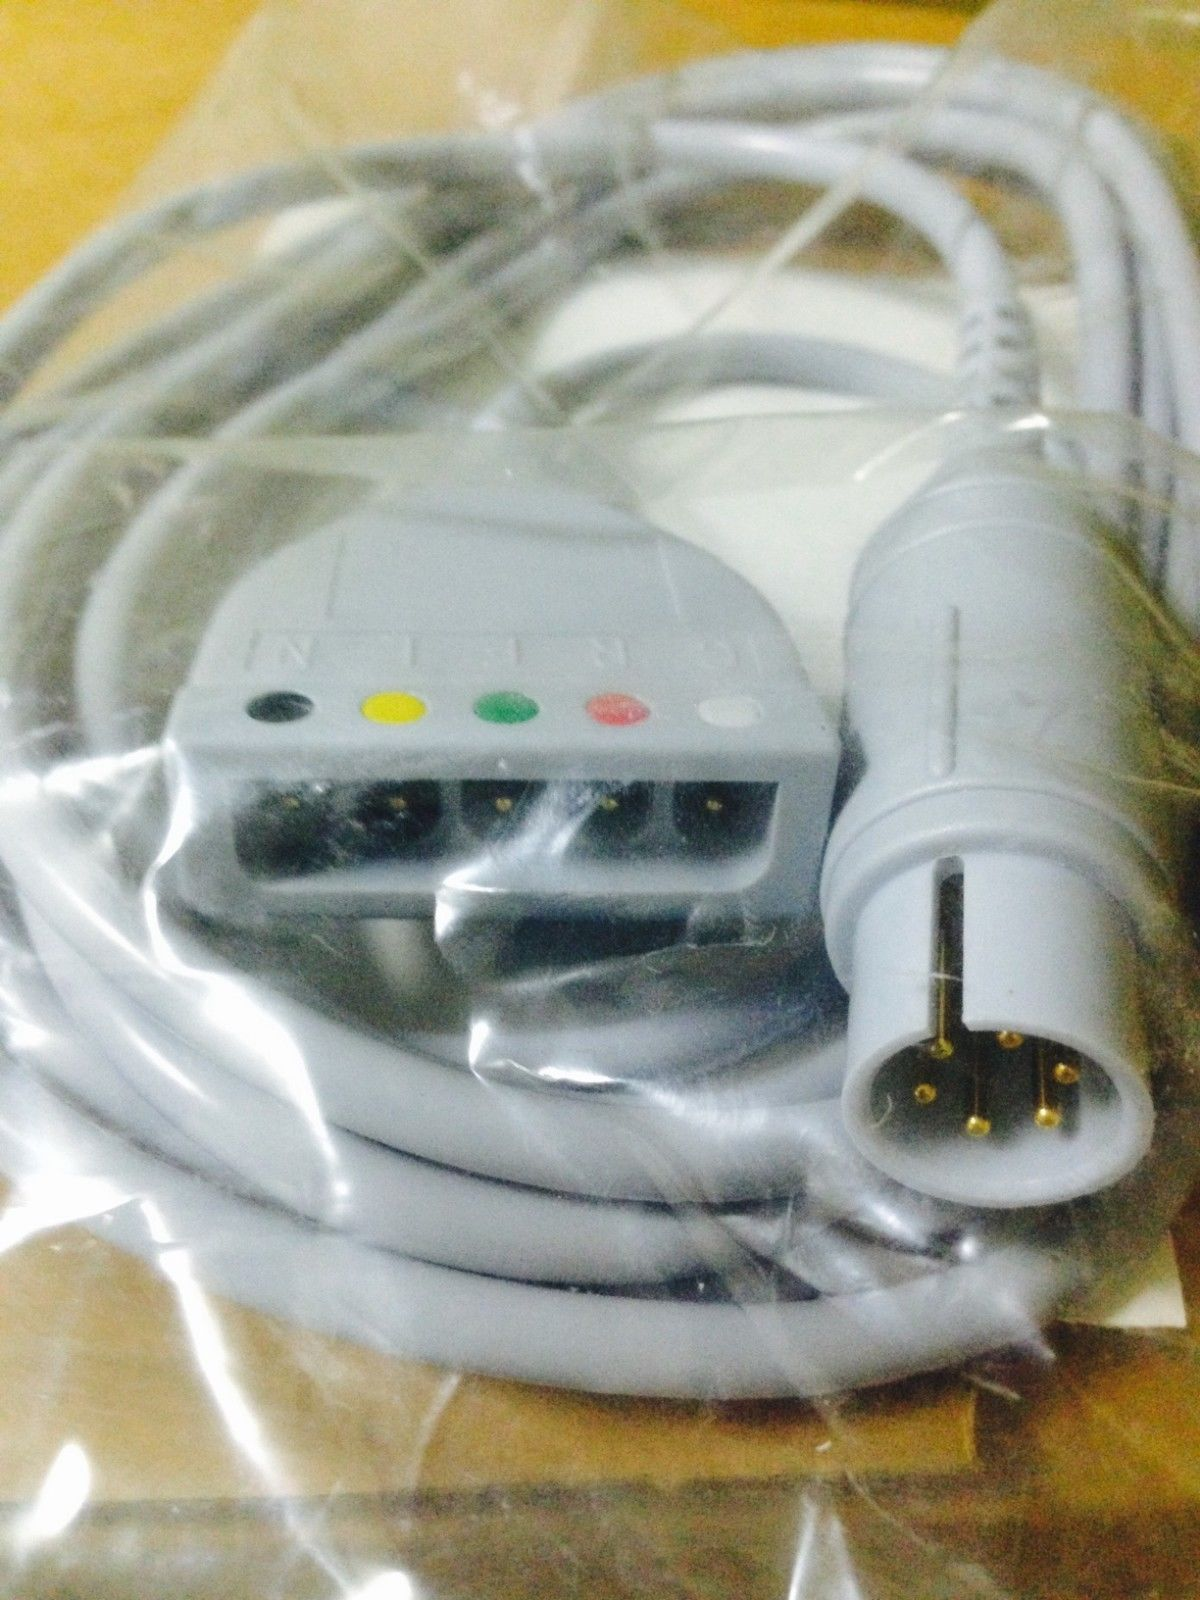 Lot-of-5-cables-of-datascope-0012-00-1255-01-ecg-trunk-cable